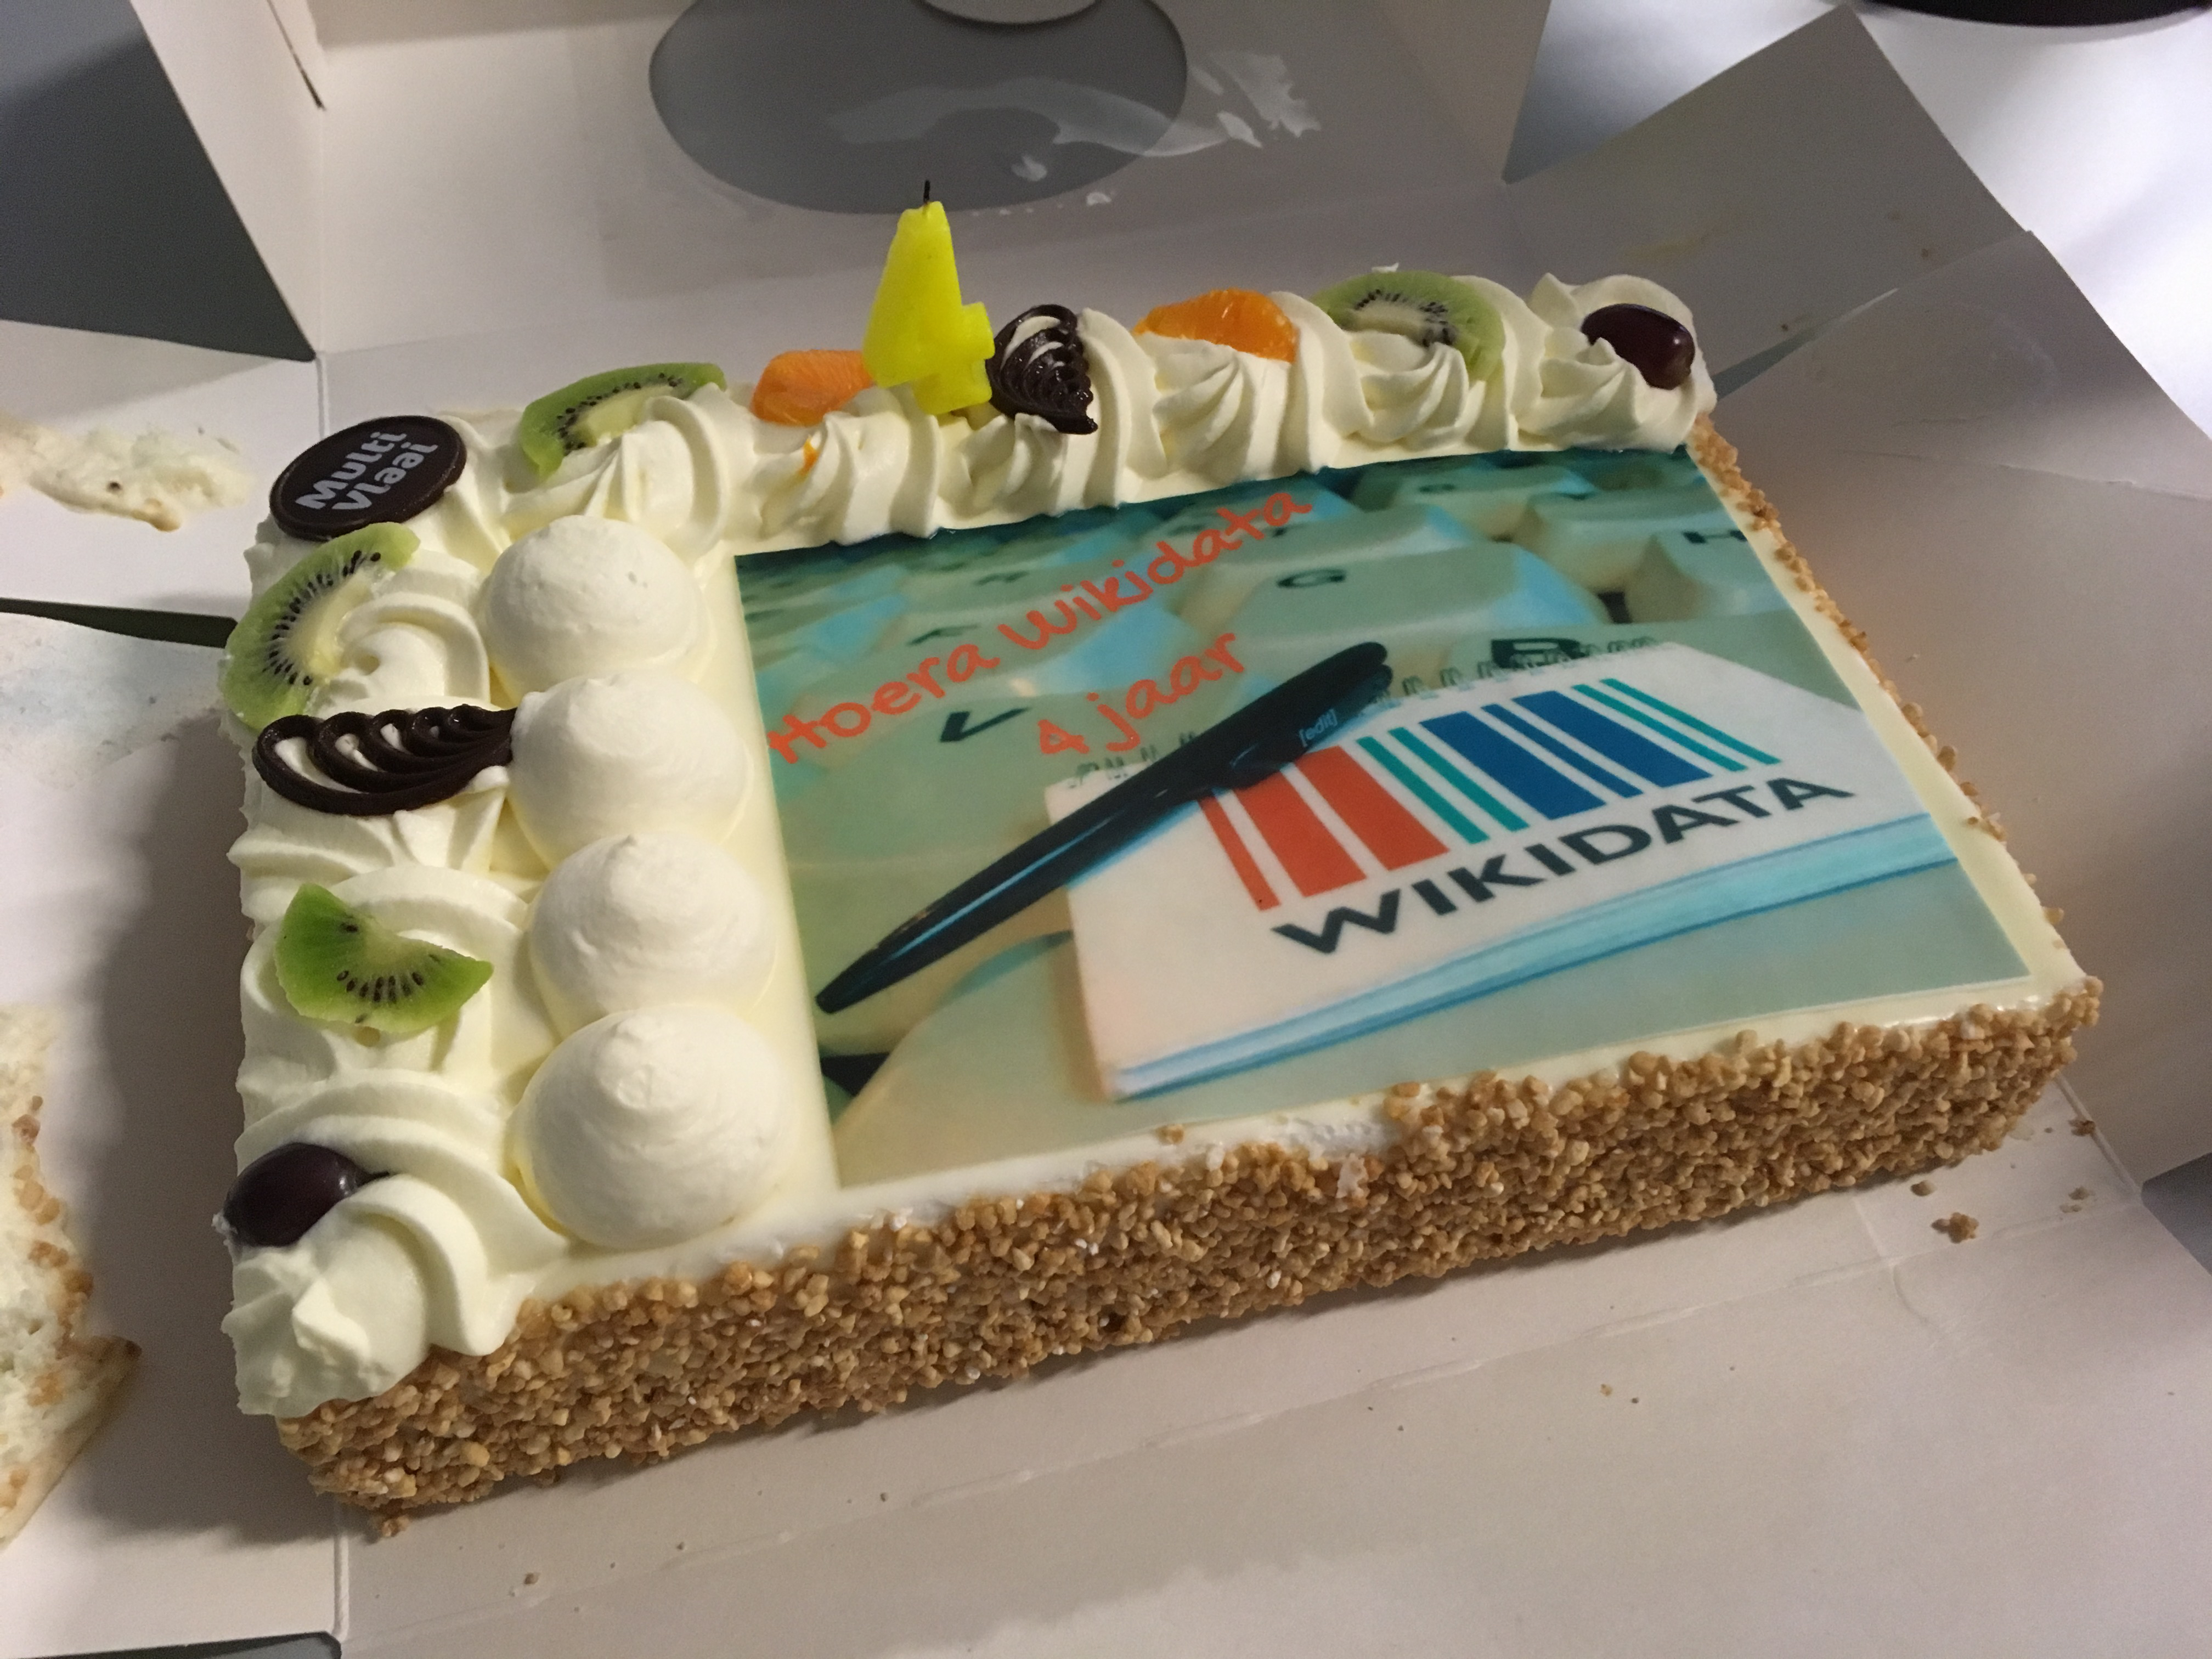 Filecake For Wikidatas Fourth Birthday At The Wmnl Officeg